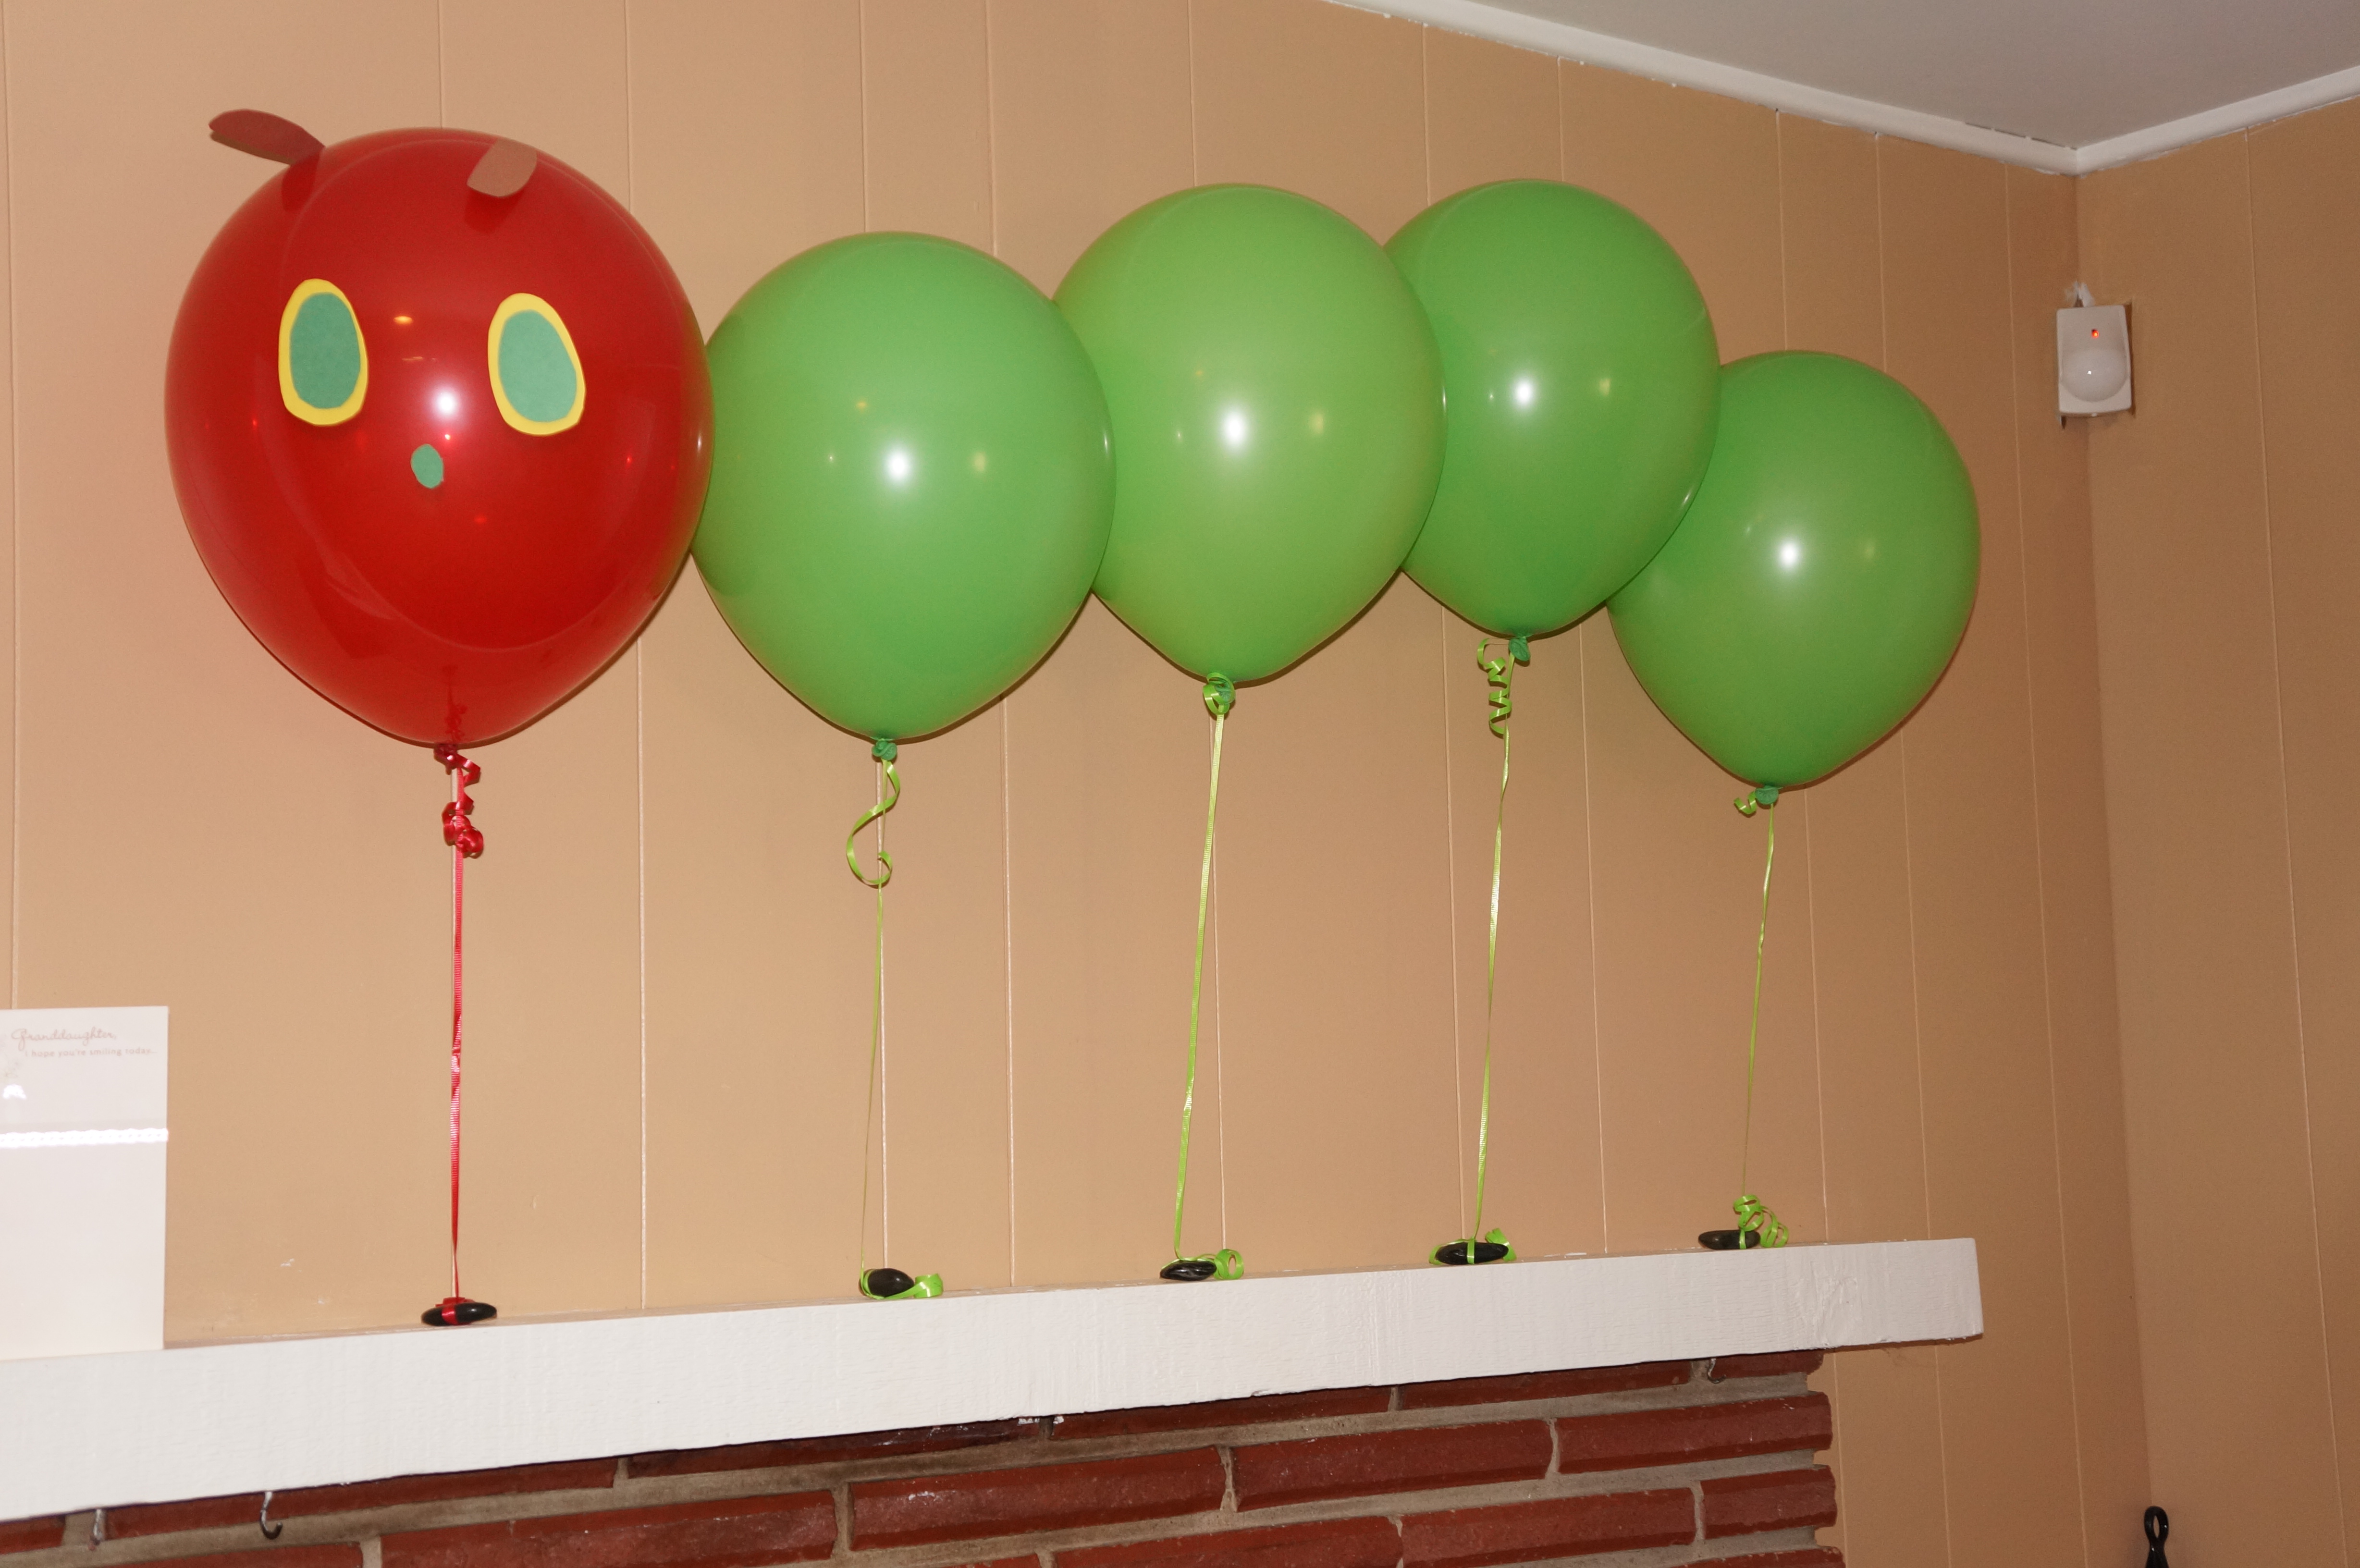 Put some balloons on the mantel to make the Hungry Caterpillar.